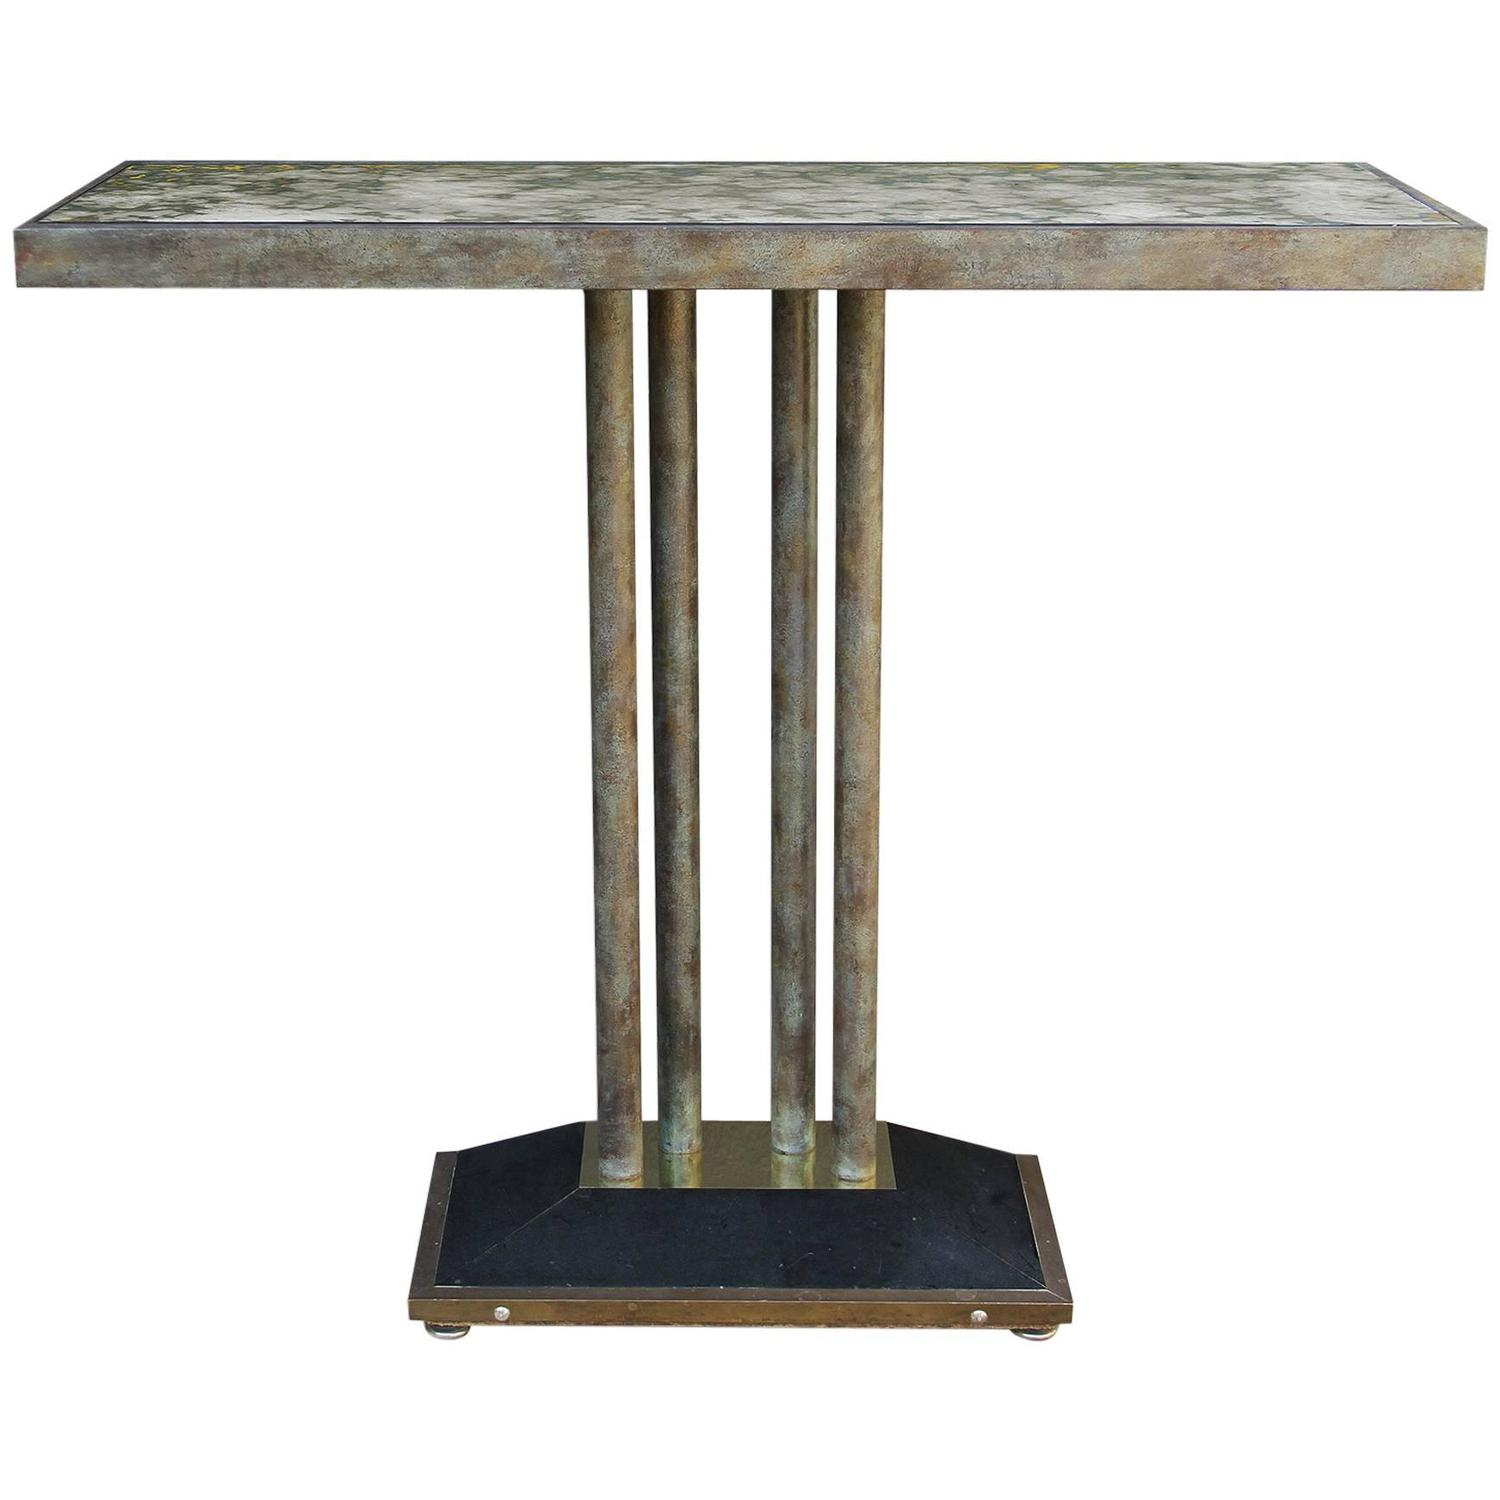 console table from drouant restaurant paris for sale at 1stdibs. Black Bedroom Furniture Sets. Home Design Ideas